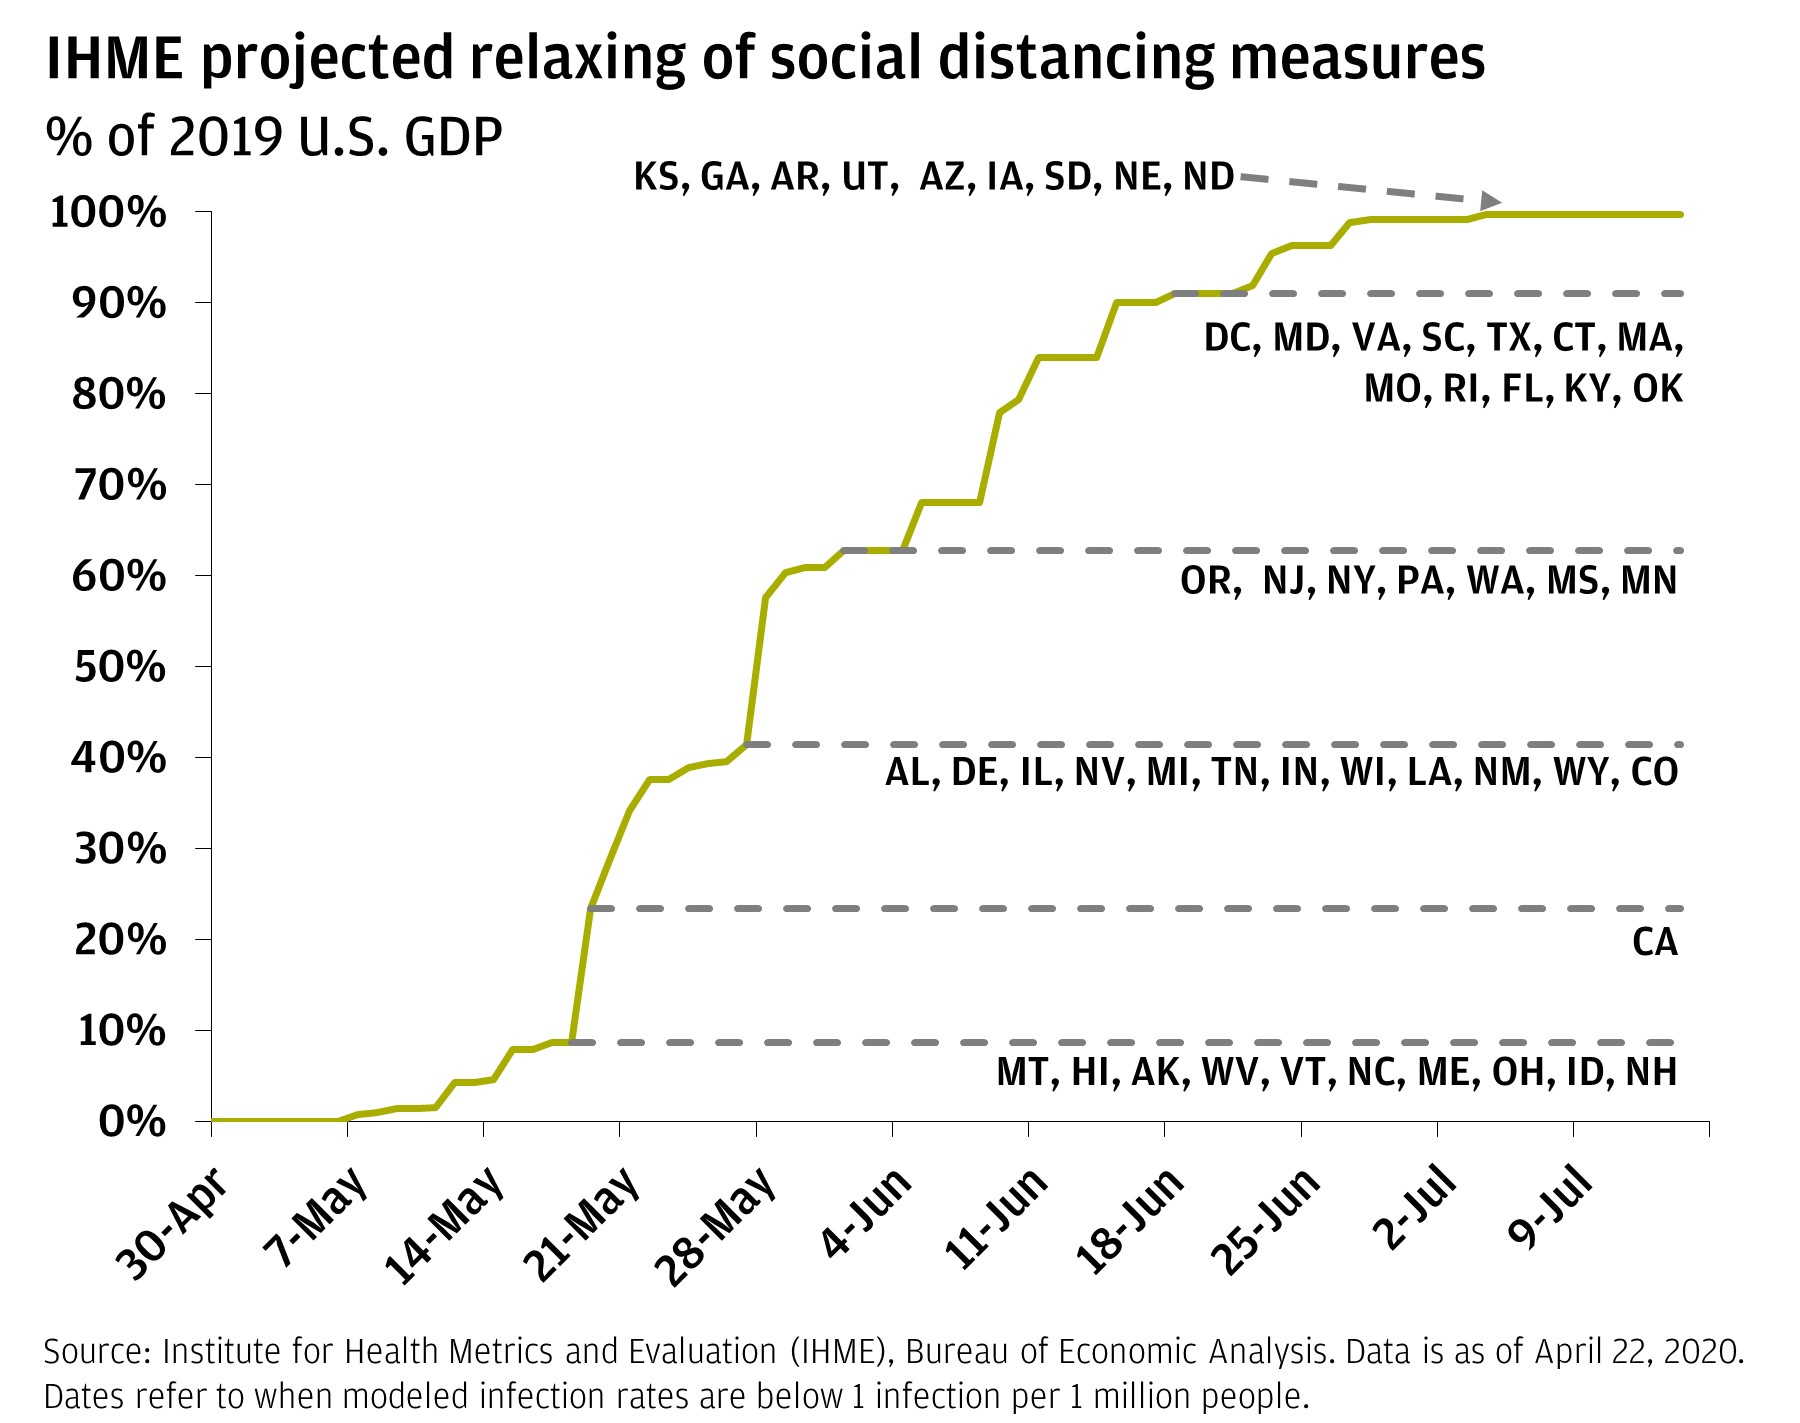 Line chart shows the IHME projected relaxing of social distancing measures across the United States from April 30, 2020, through July 2020.